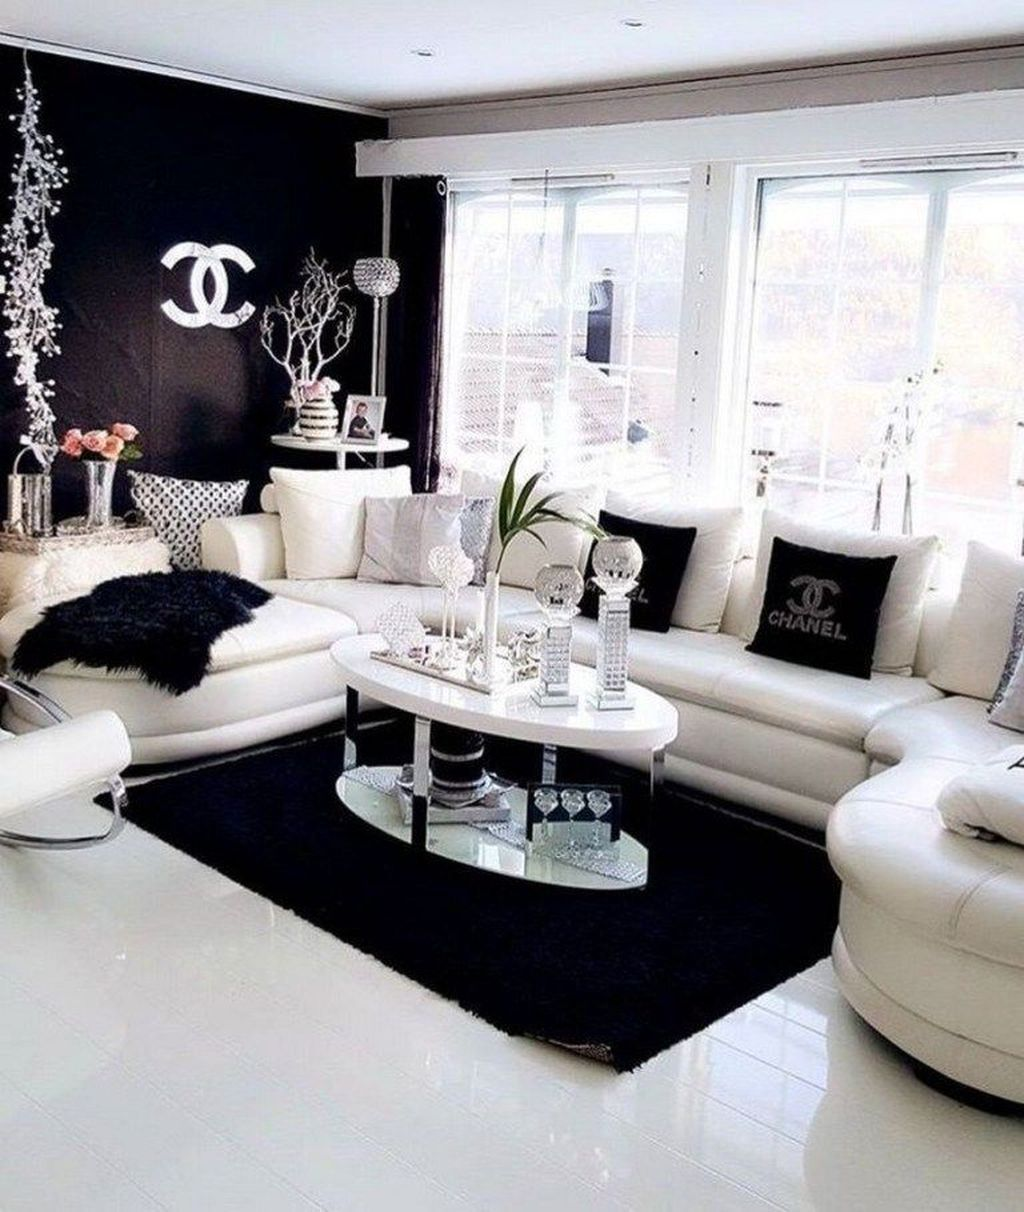 15 Perfect And Cozy Small Living Room Design: 33 Perfect Black And White Color Ideas For Your Living